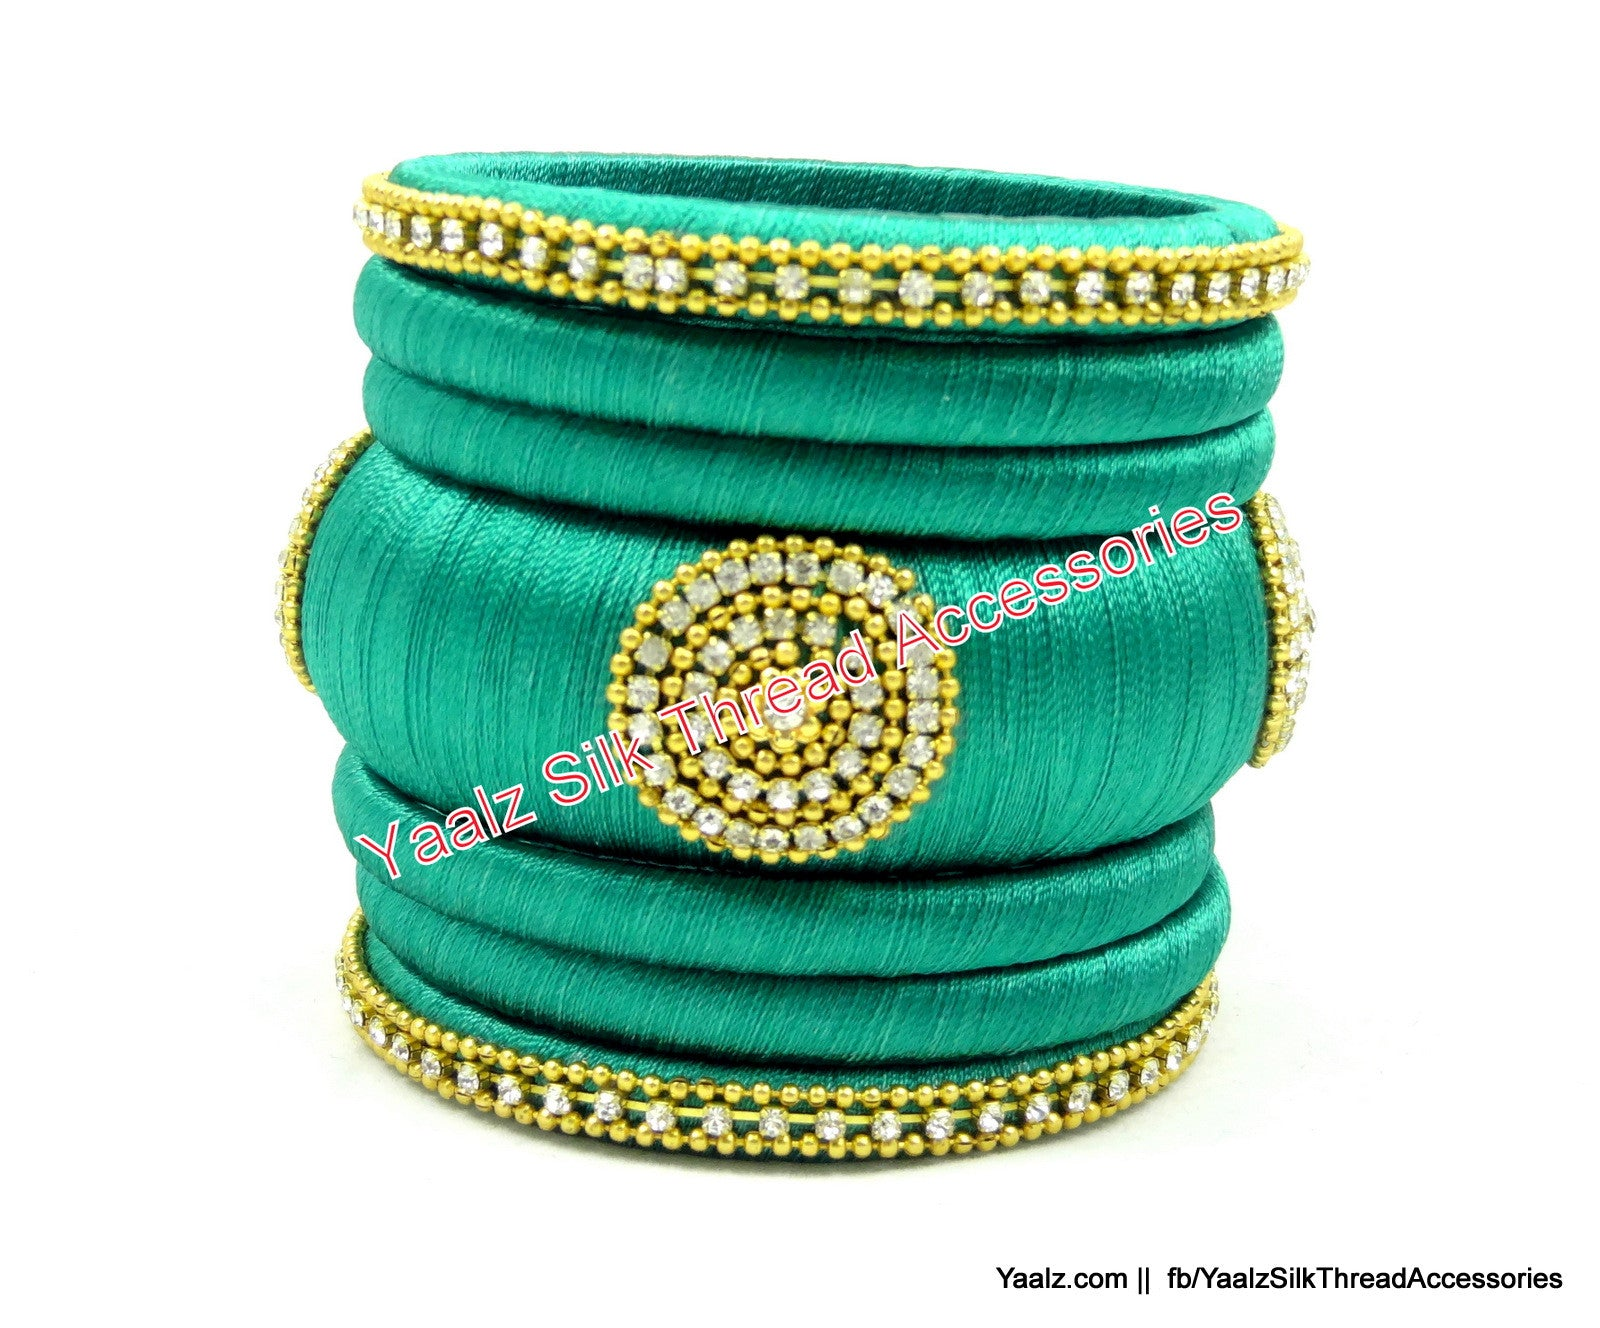 Yaalz Assorted Silk Thread Bangle Collection in Sea Green Color(s)